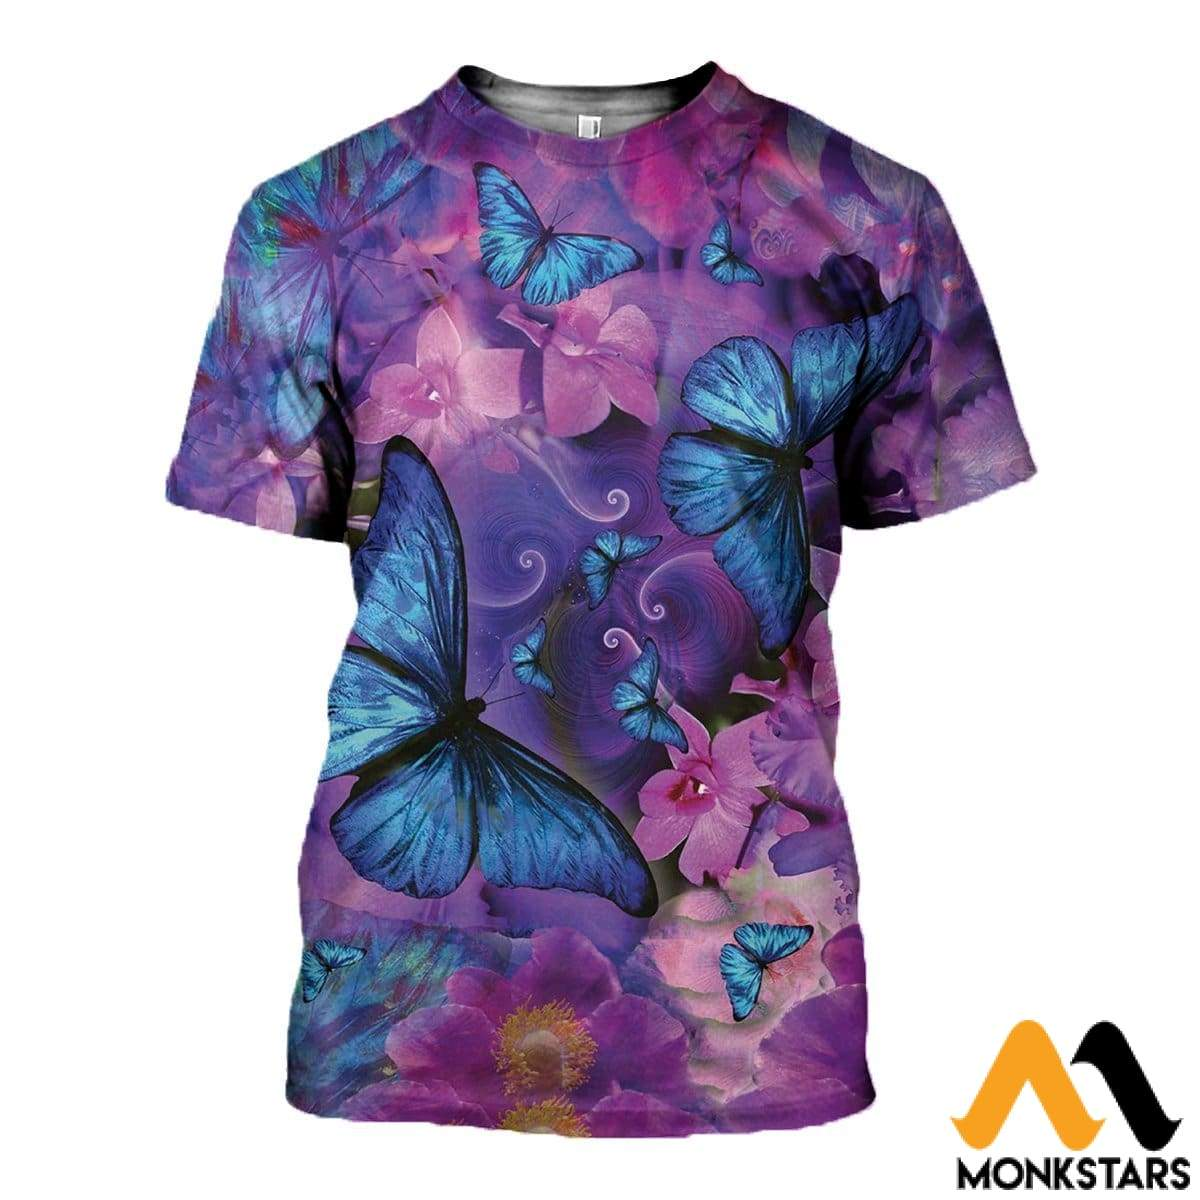 3D All Over Printed Butterflies Tops T-Shirt / Xs Clothes